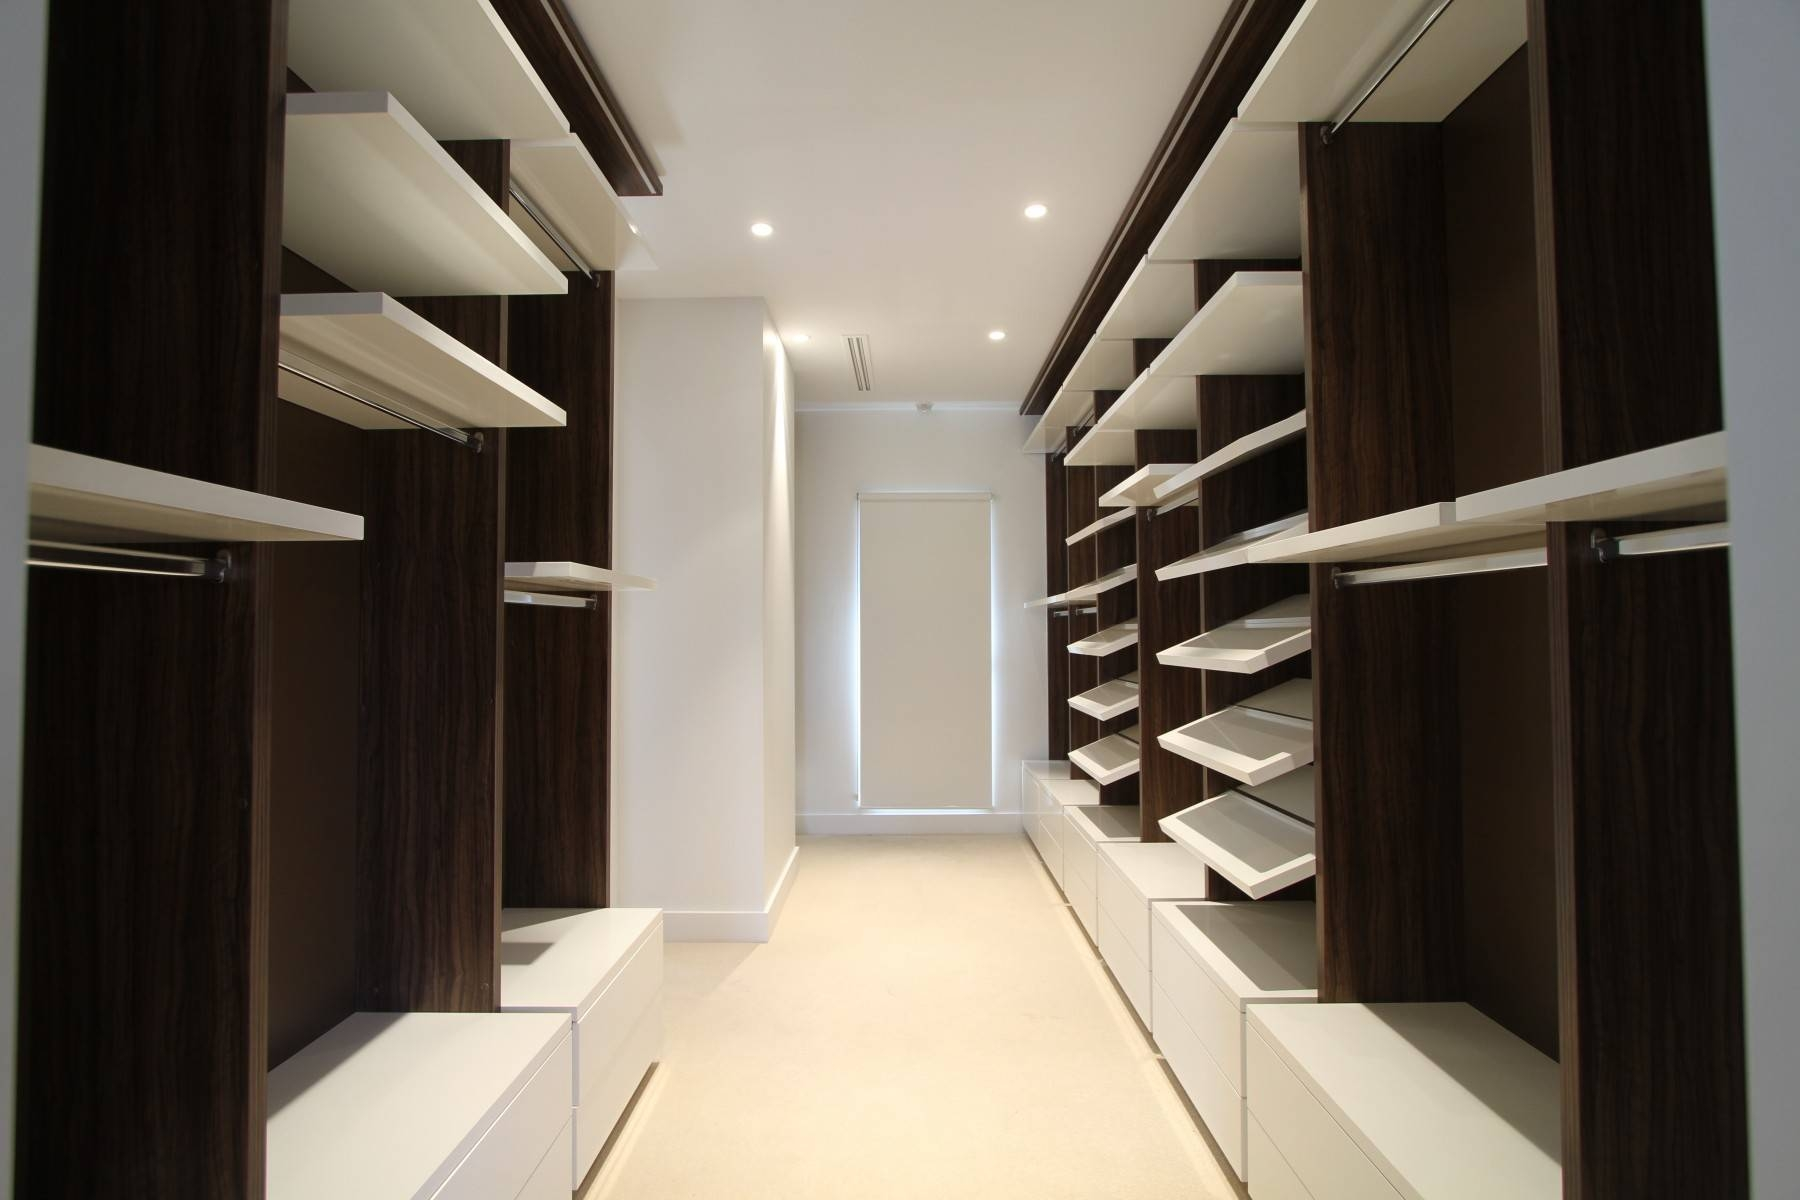 Signature Wardrobes – Just Wardrobes & Storage Within Signature Wardrobes (View 14 of 15)